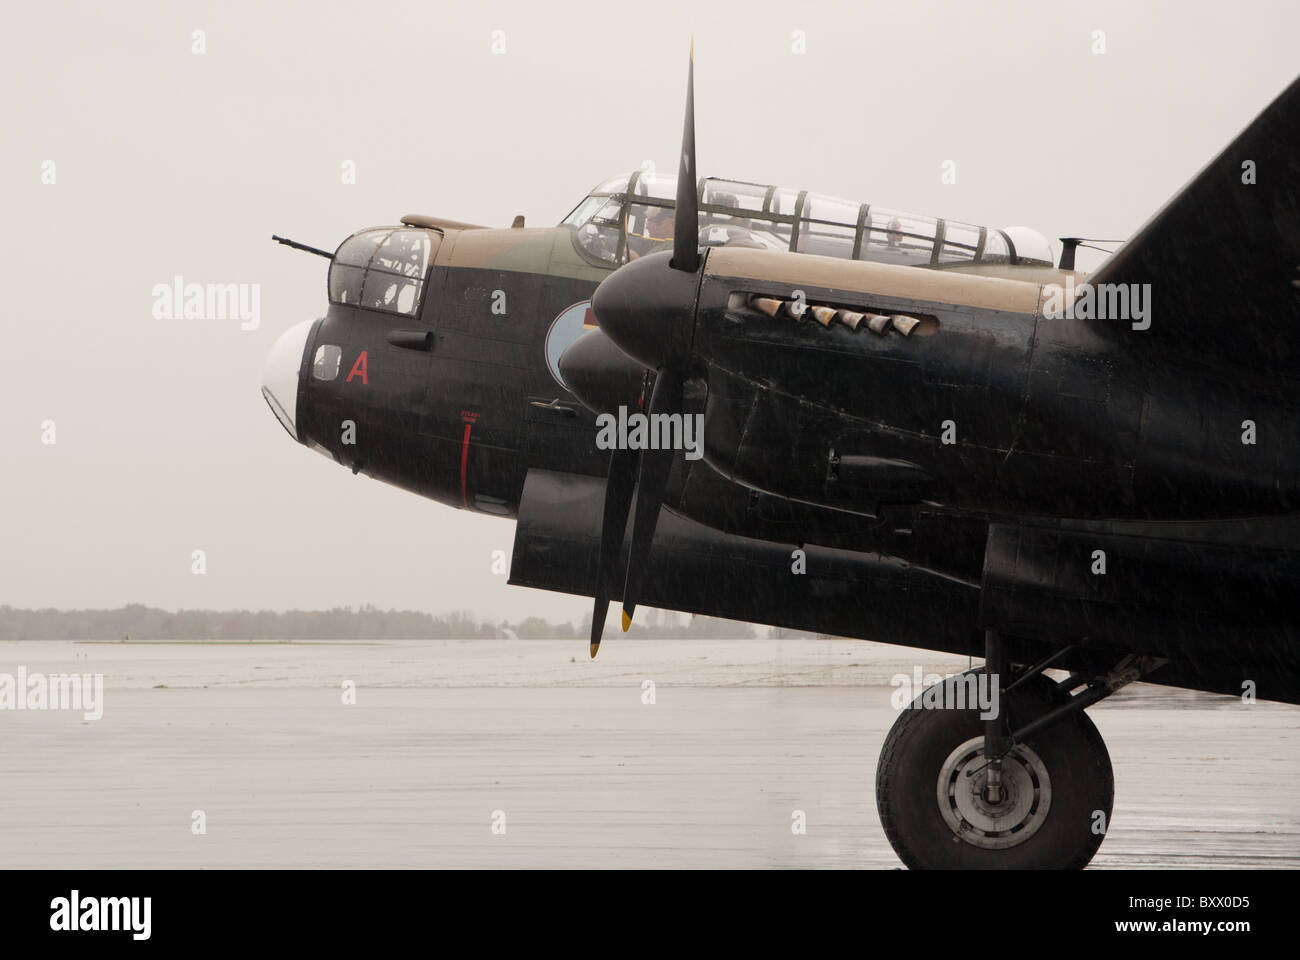 The Avro Lancaster X of the Canadian Warplane Heritage Museum being readied for take off in Hamilton Ontario, Canada. - Stock Image